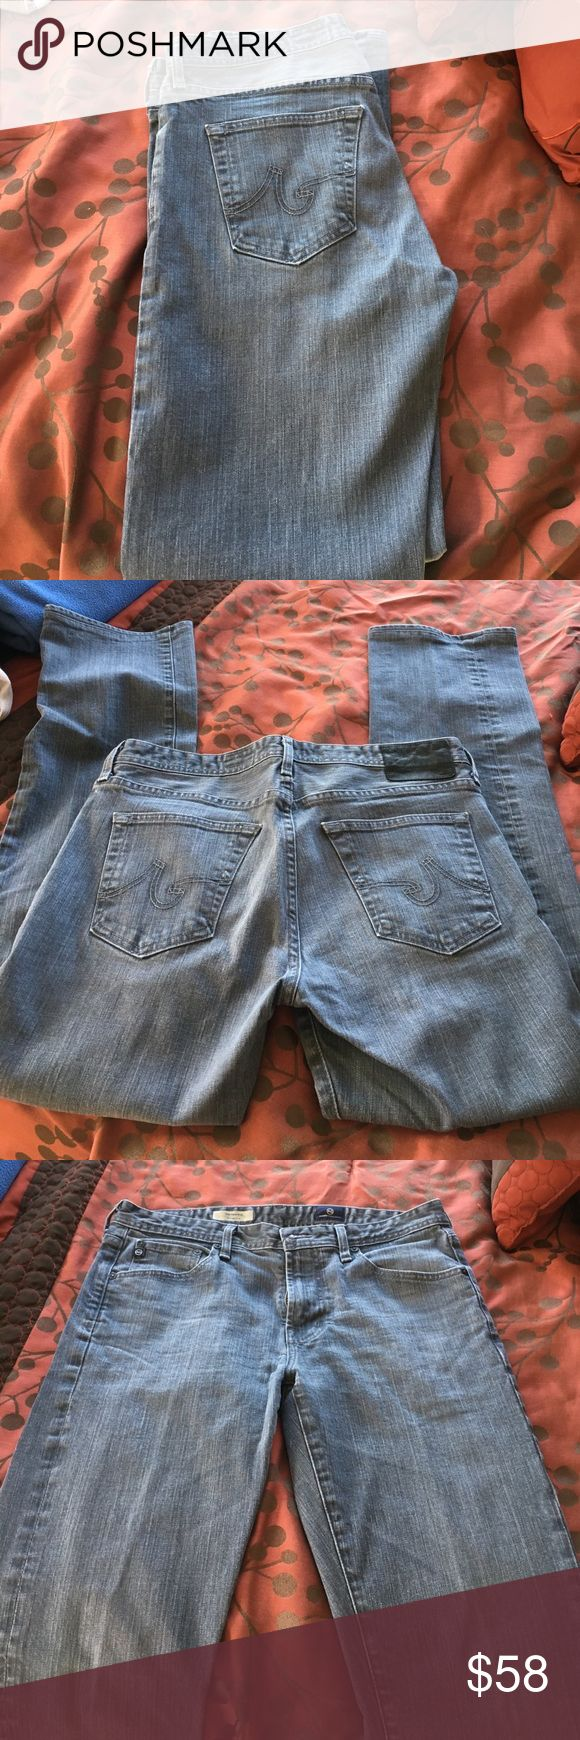 Gray Jeans size 32x34 Gray wash, straight leg, the protege is the type of jean it is. Very comfortable. Great Condition! Ag Adriano Goldschmied Jeans Straight